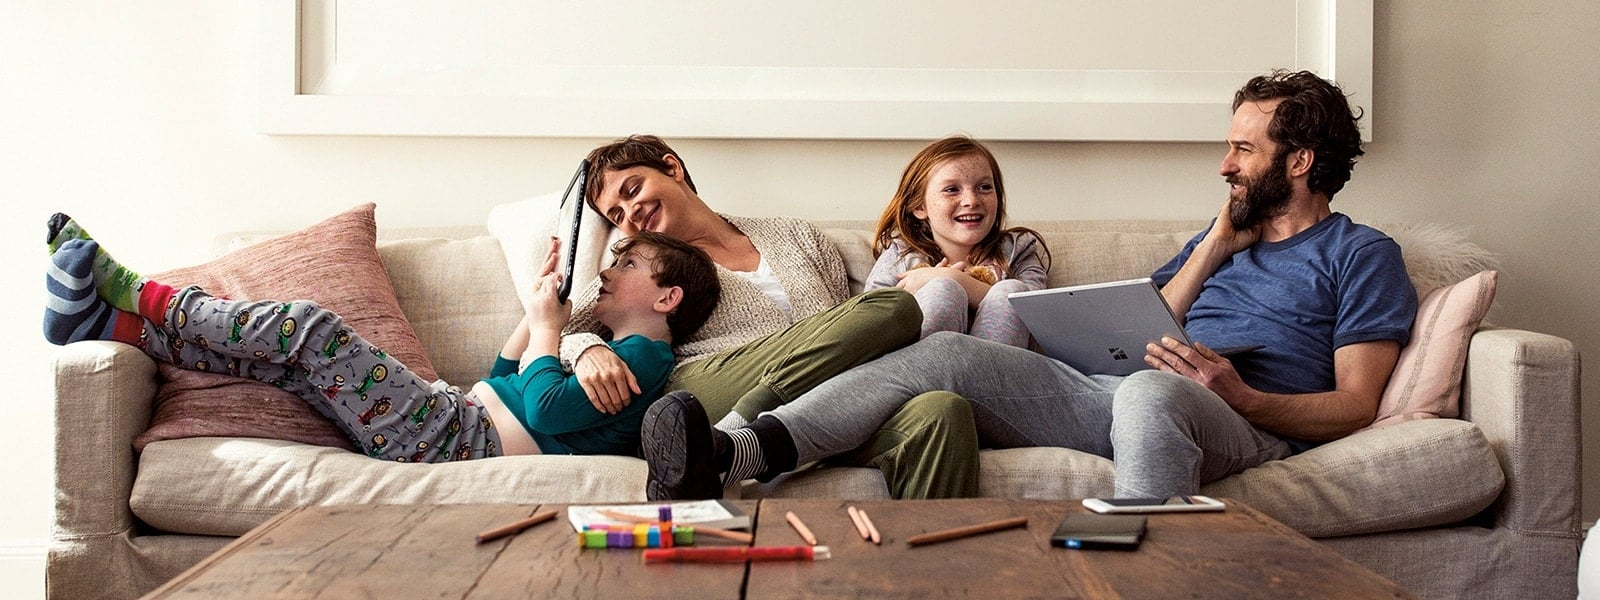 Family lying on a sofa